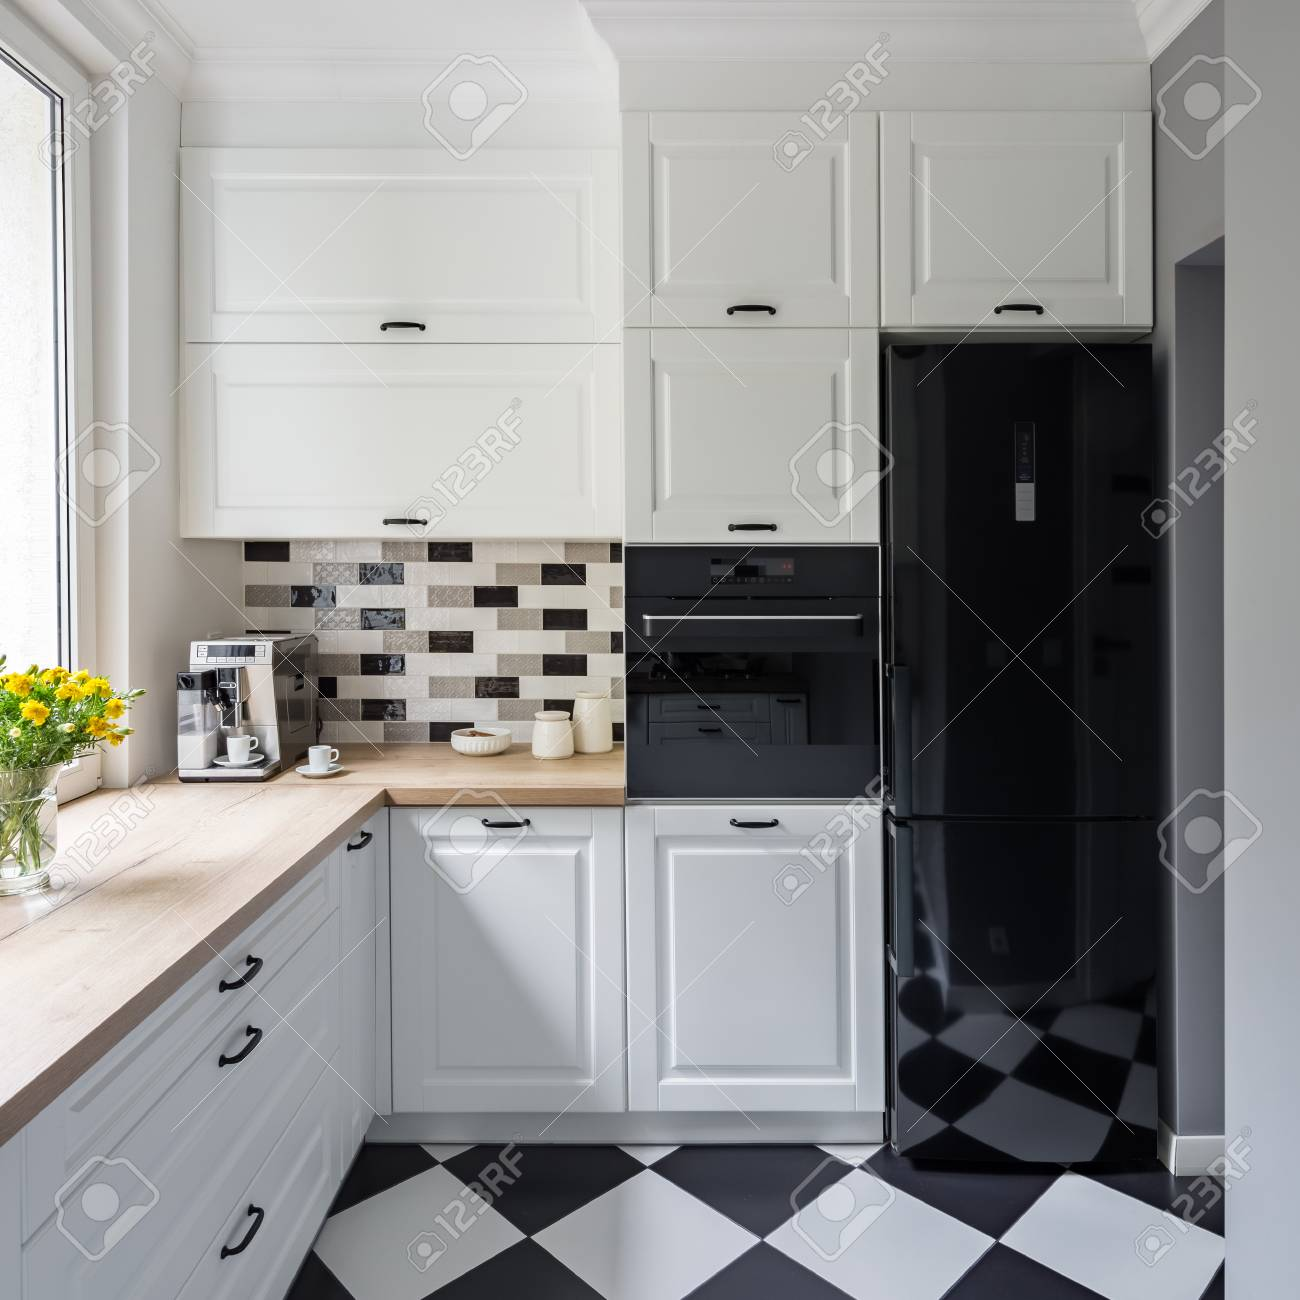 Small White Kitchen With Modern Chess Flooring And Black Fridge Stock Photo Picture Royalty Free Image 93738724